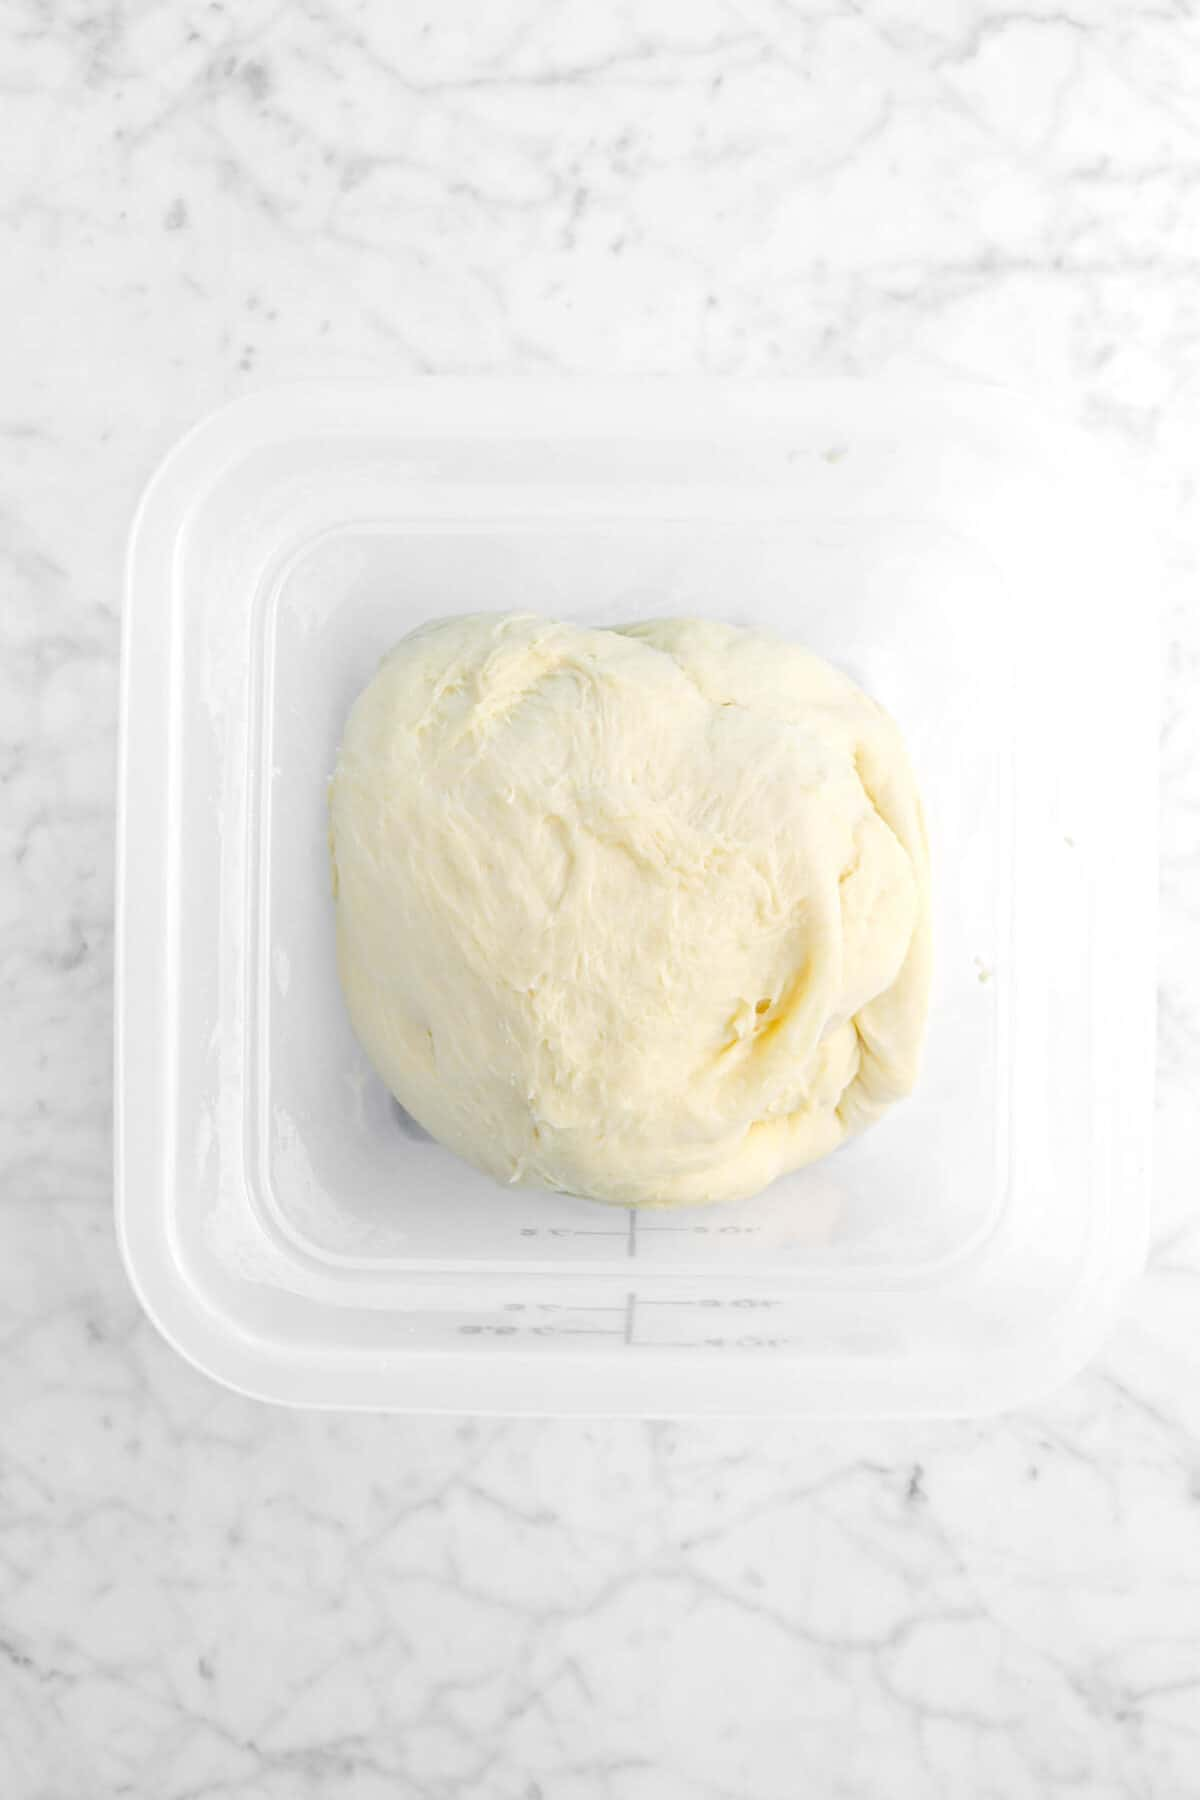 dough in the plastic container on marble counter